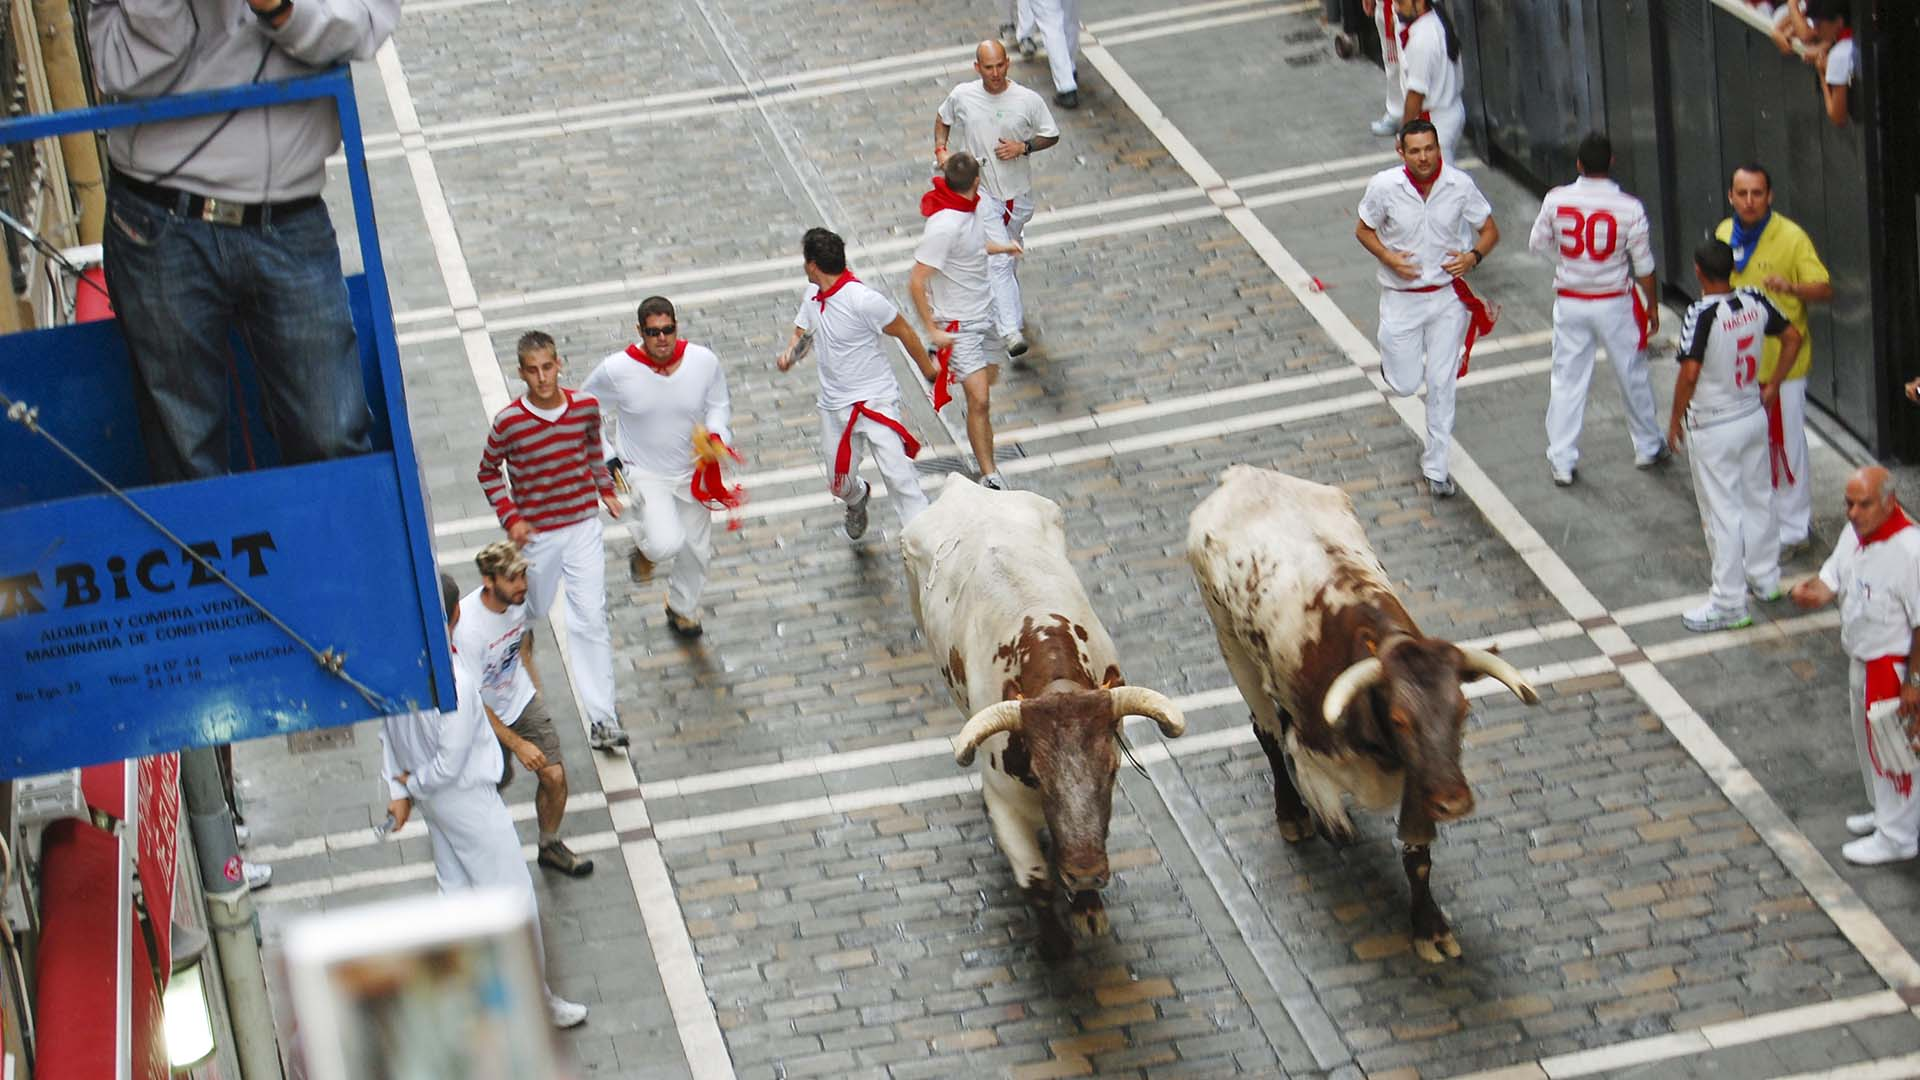 Rick experiences the pleasures of Andalucia, ventures into the reveller-filled Parisian streets on Bastille Day, takes in the royal pageantry in London, wanders through a Venetian palace, runs with the bulls in Pamplona, and so much more. (Photo Courtesy of APT)